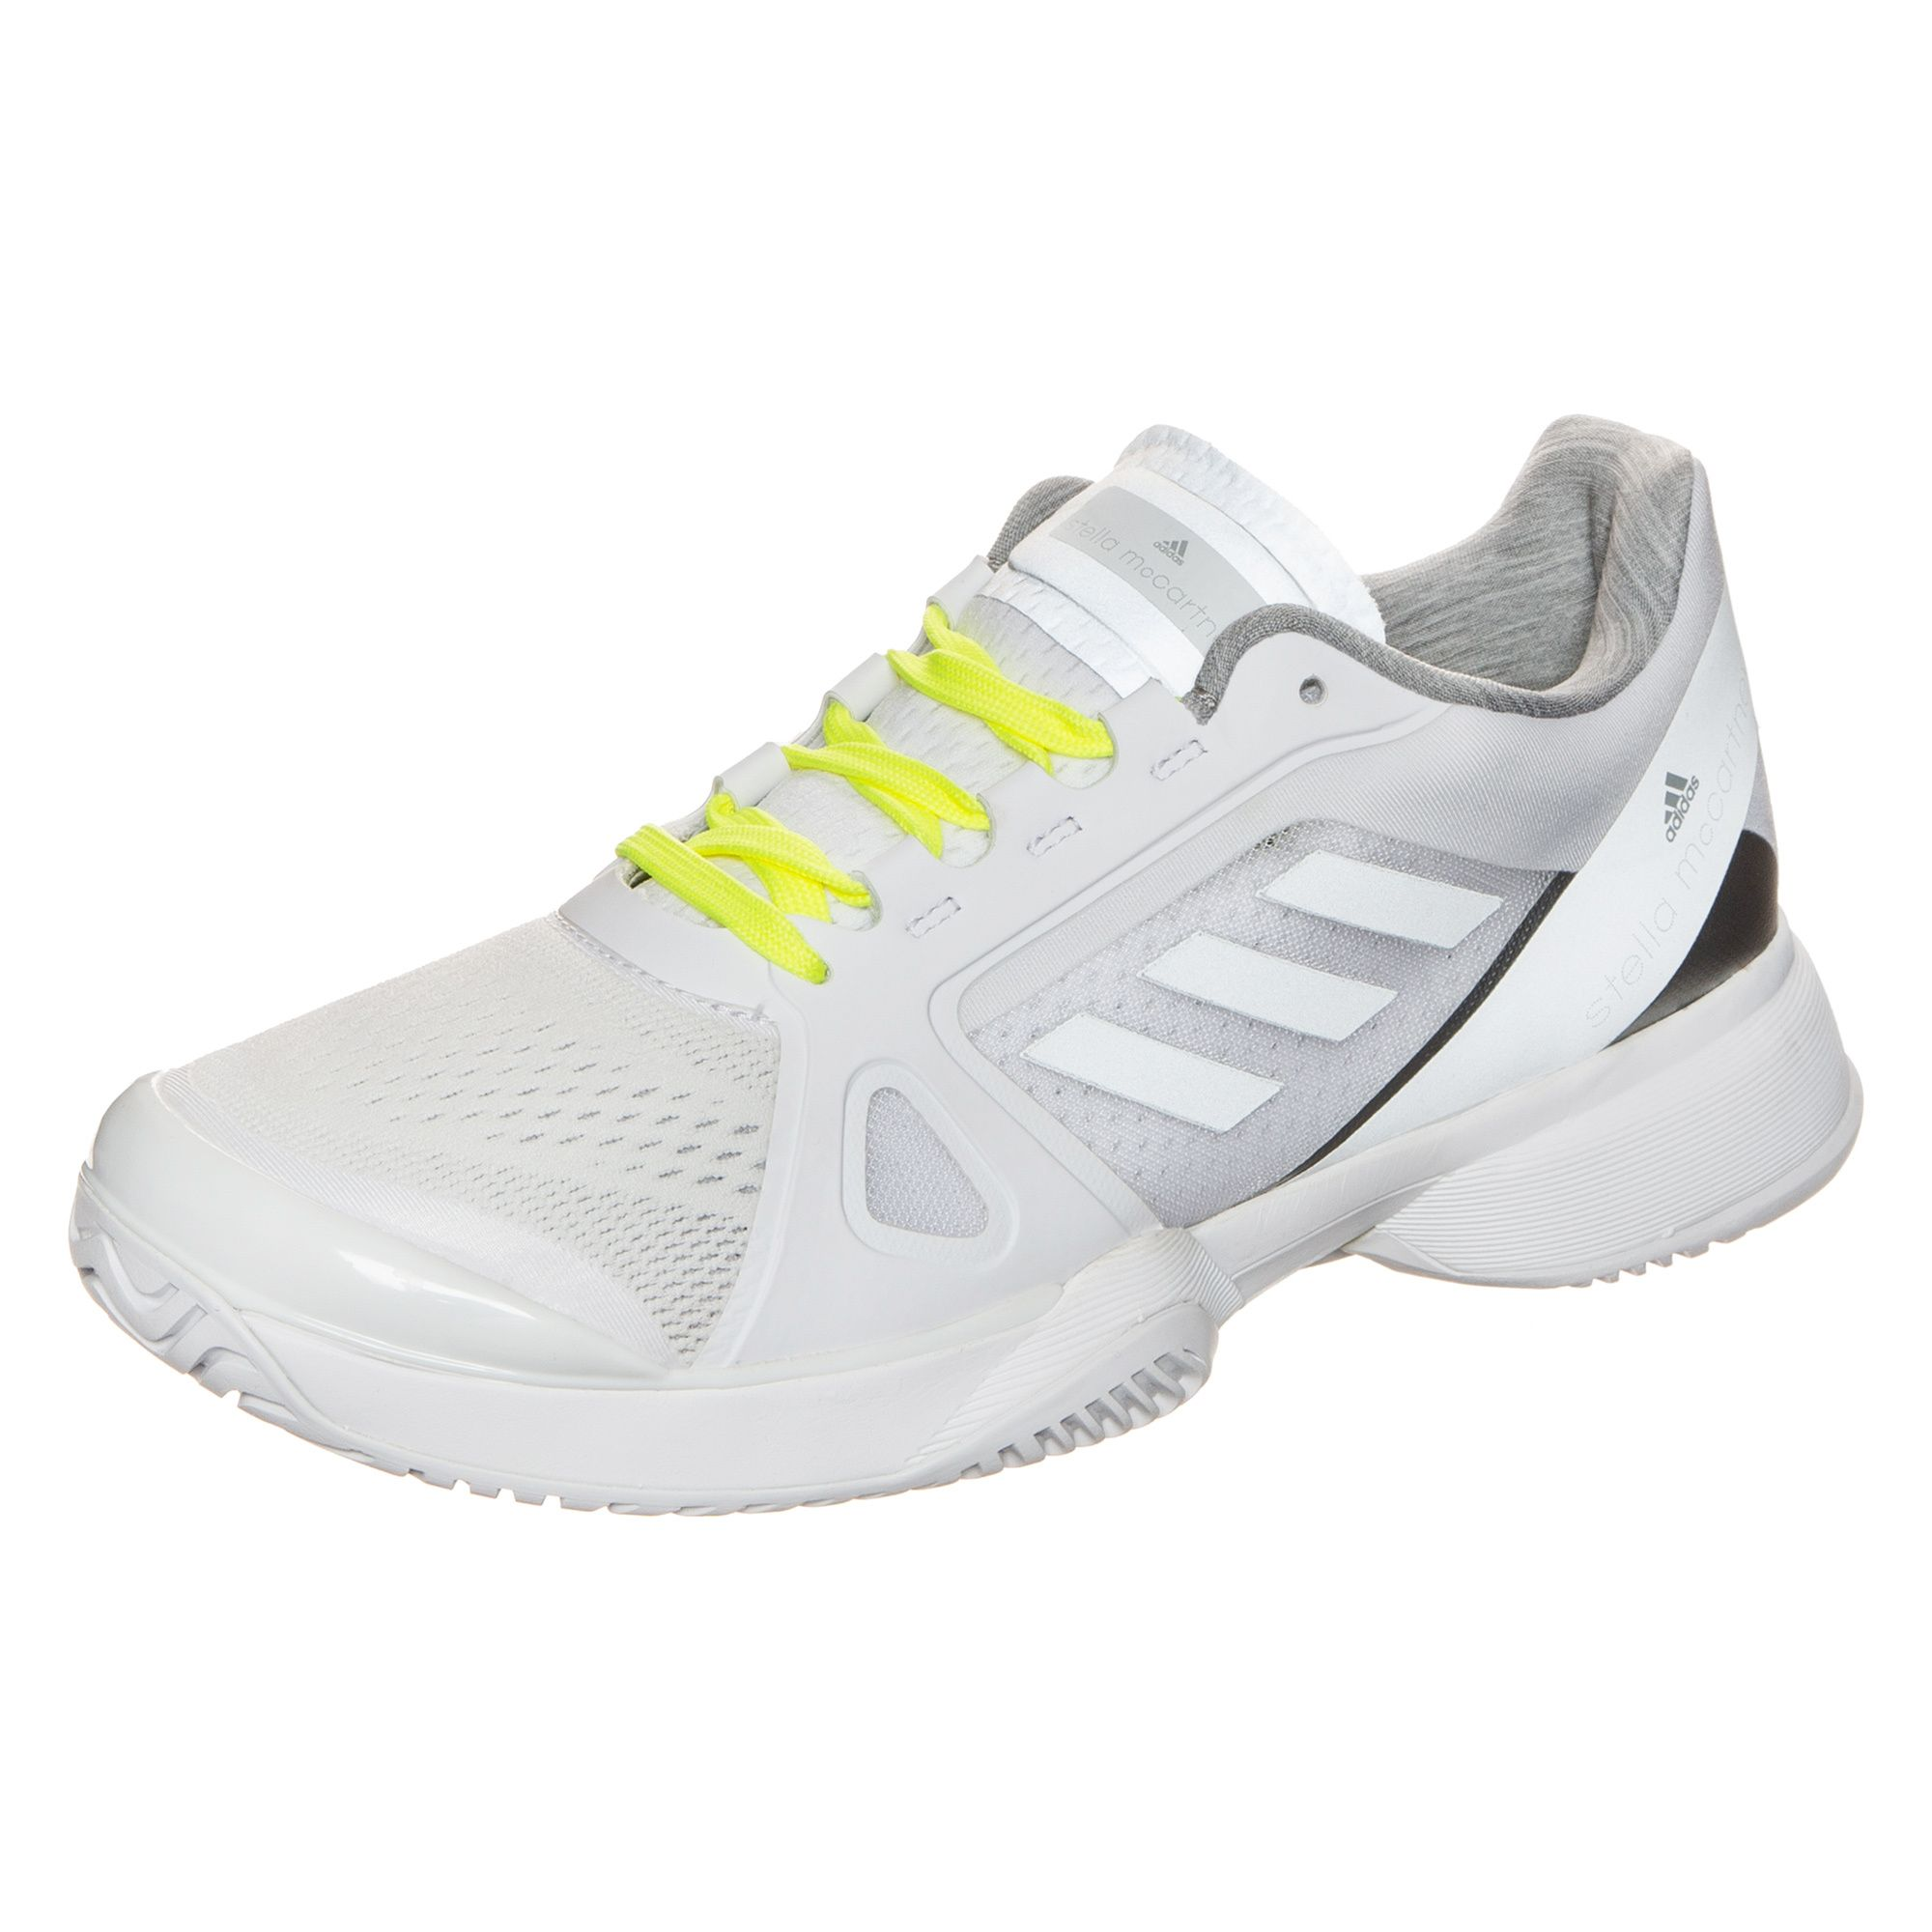 ADIDAS PERFORMANCE adidas Performance Stella McCartney Barricade 2017 Tennisschuh Damen